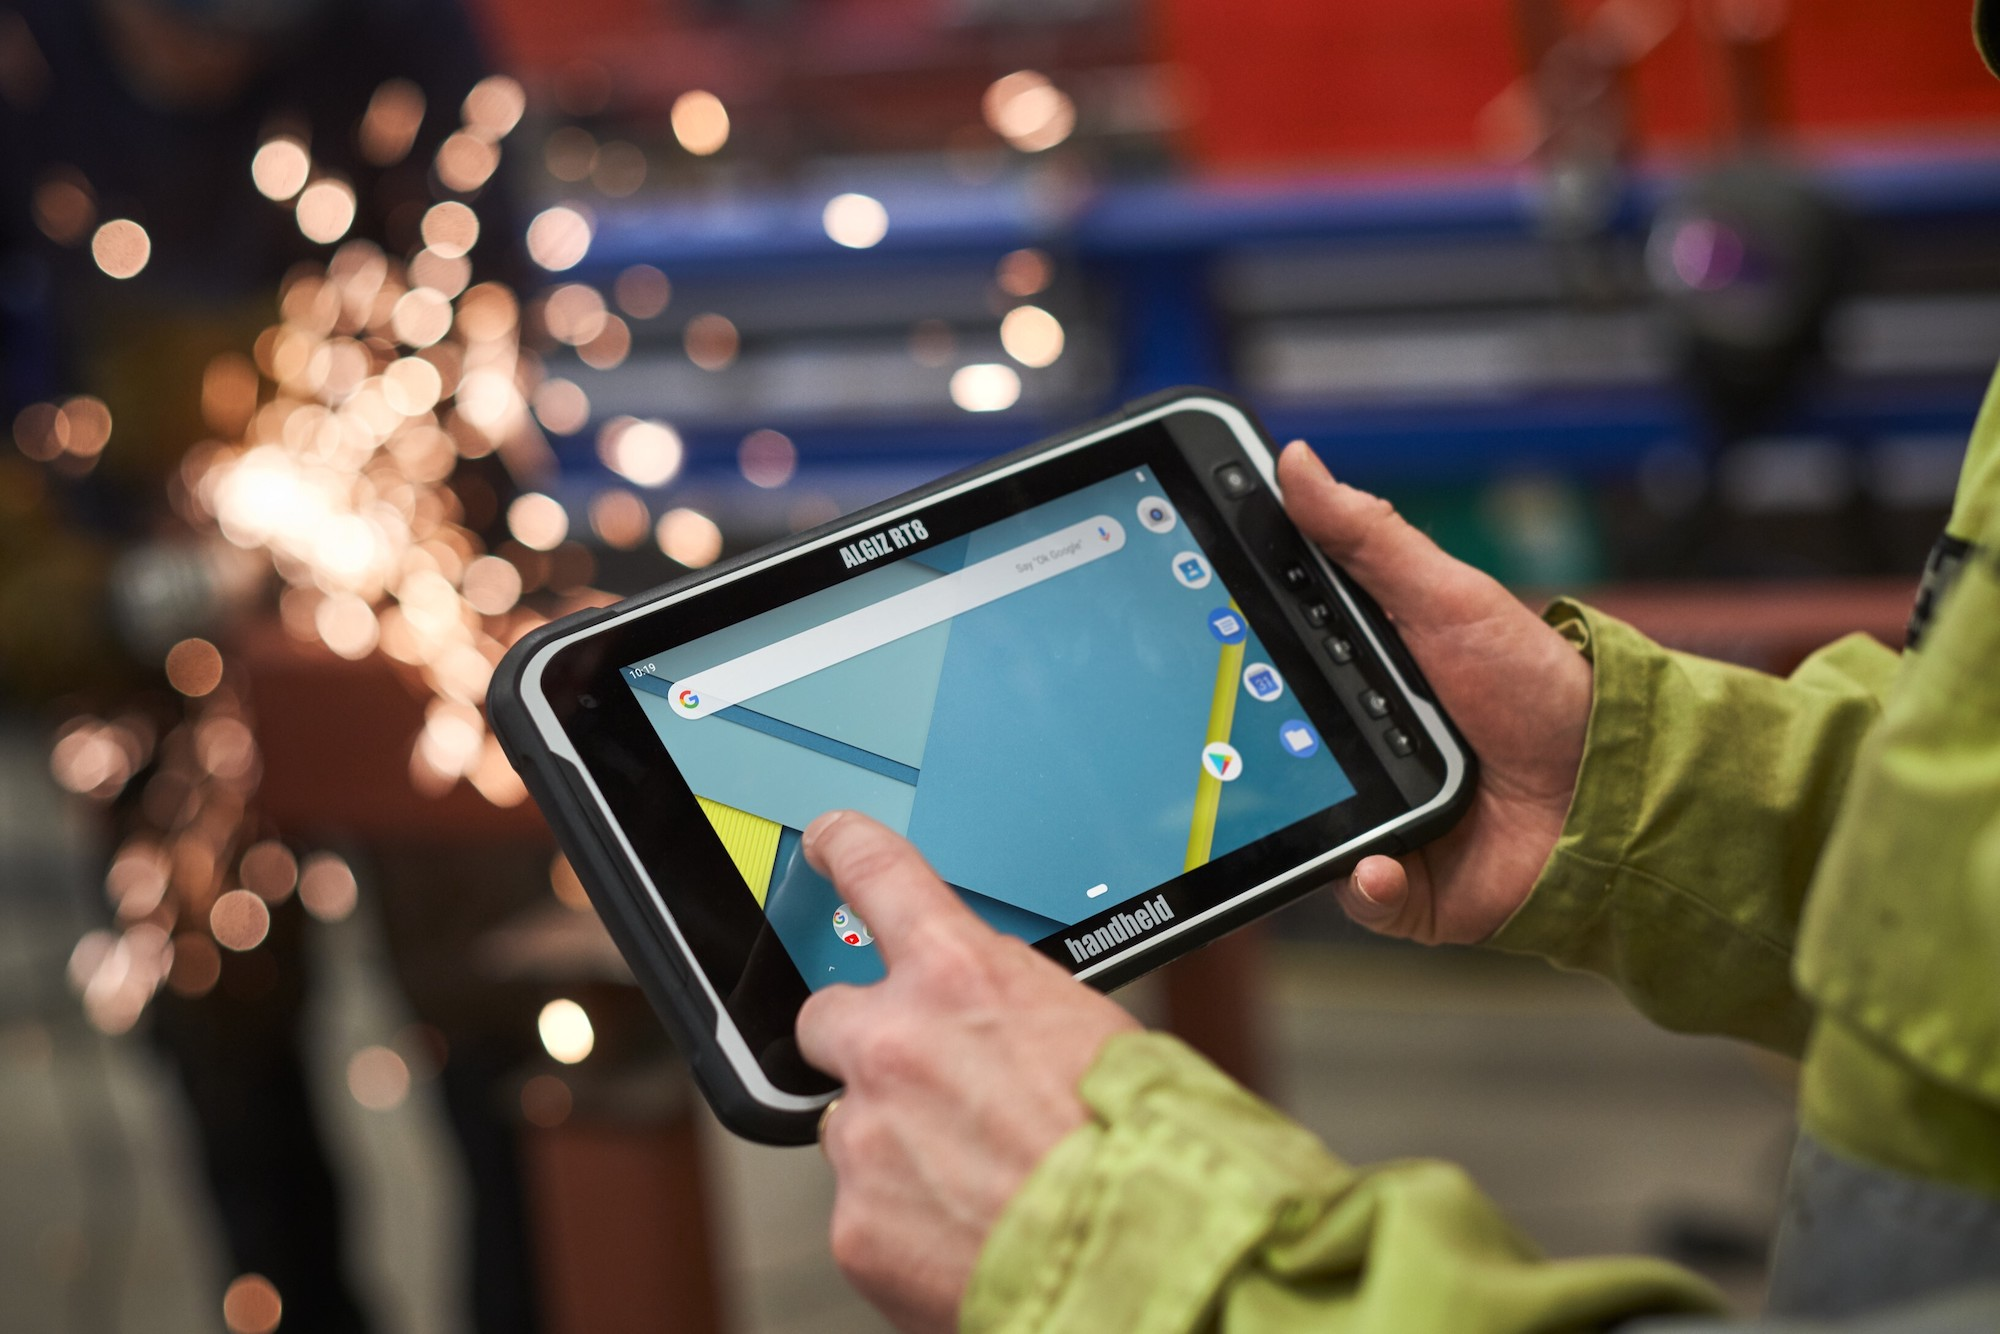 The Algiz RT8 ultra-rugged tablet for tough field work